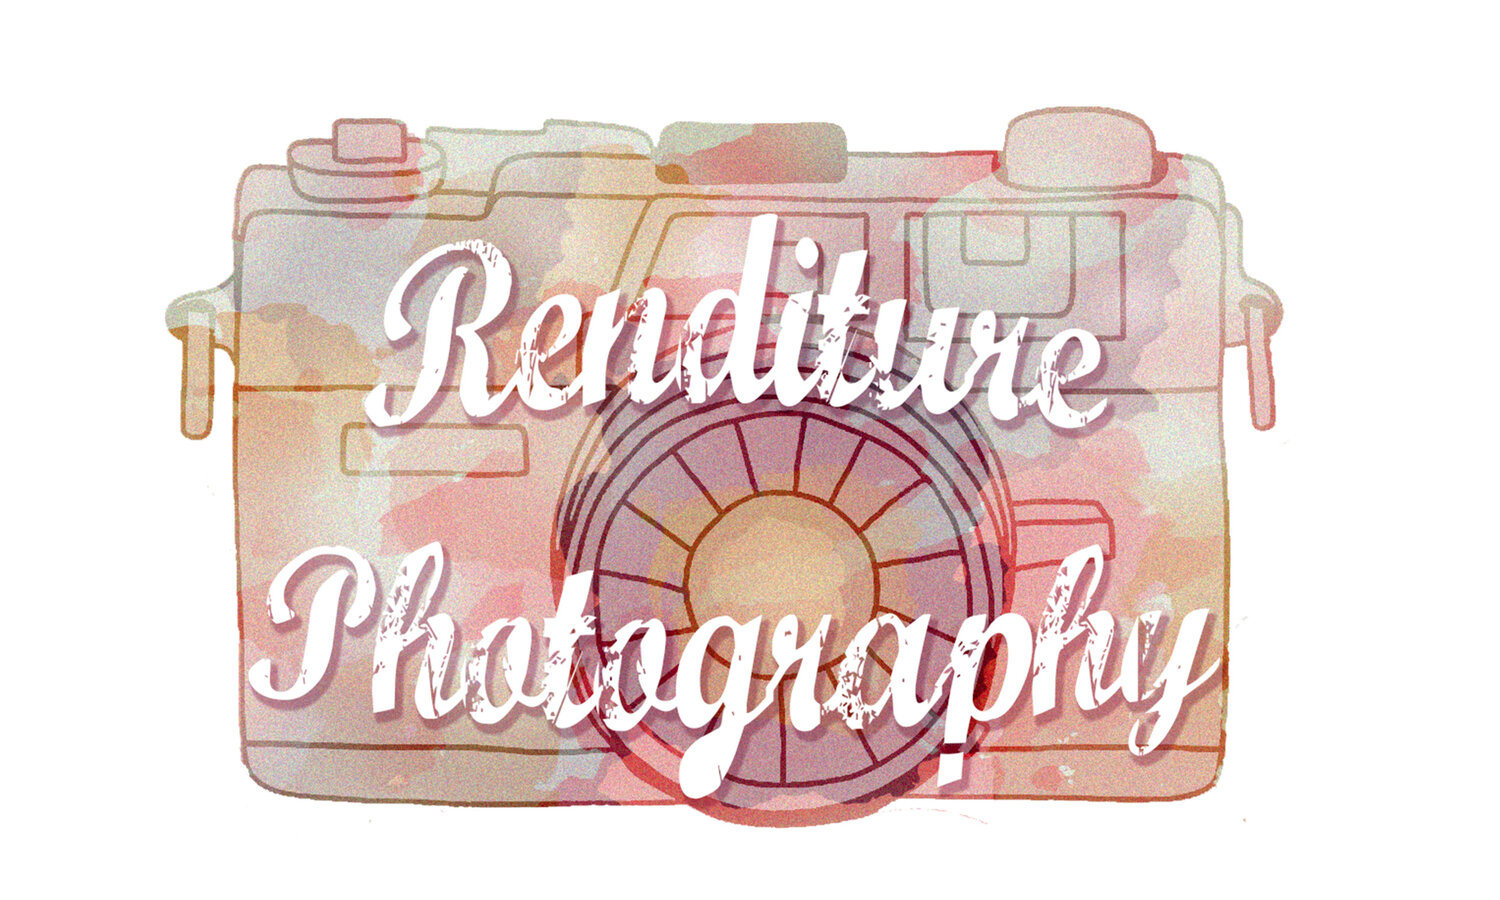 Renditure Photography